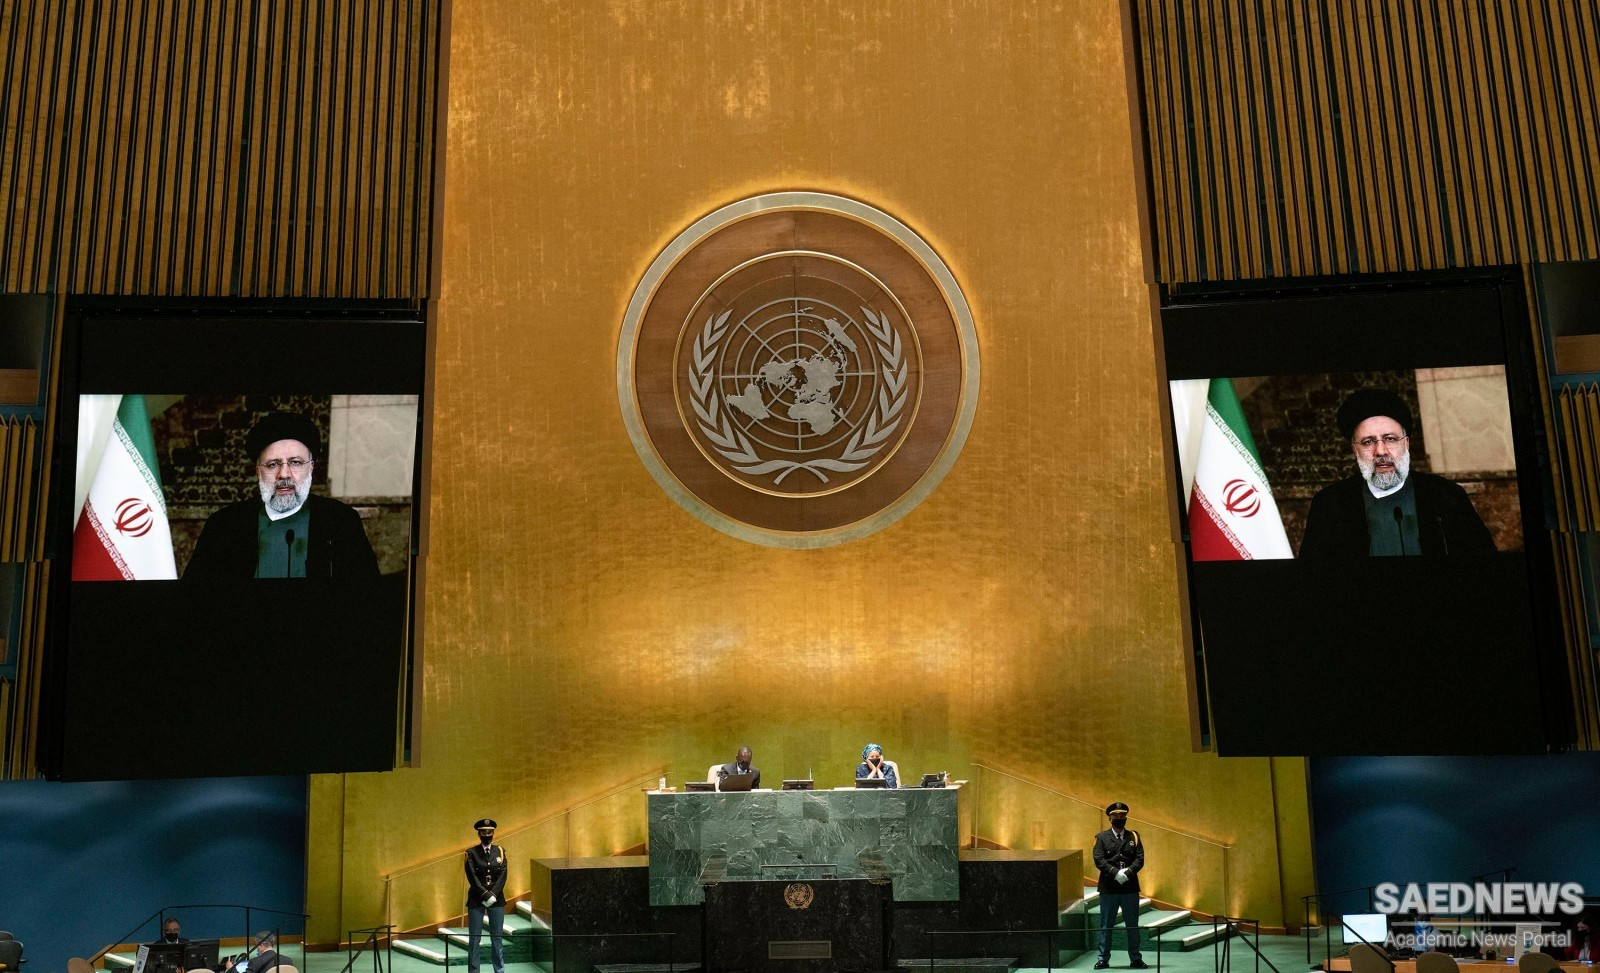 UN General Assembly Meetings under the Shadow of COVID-19